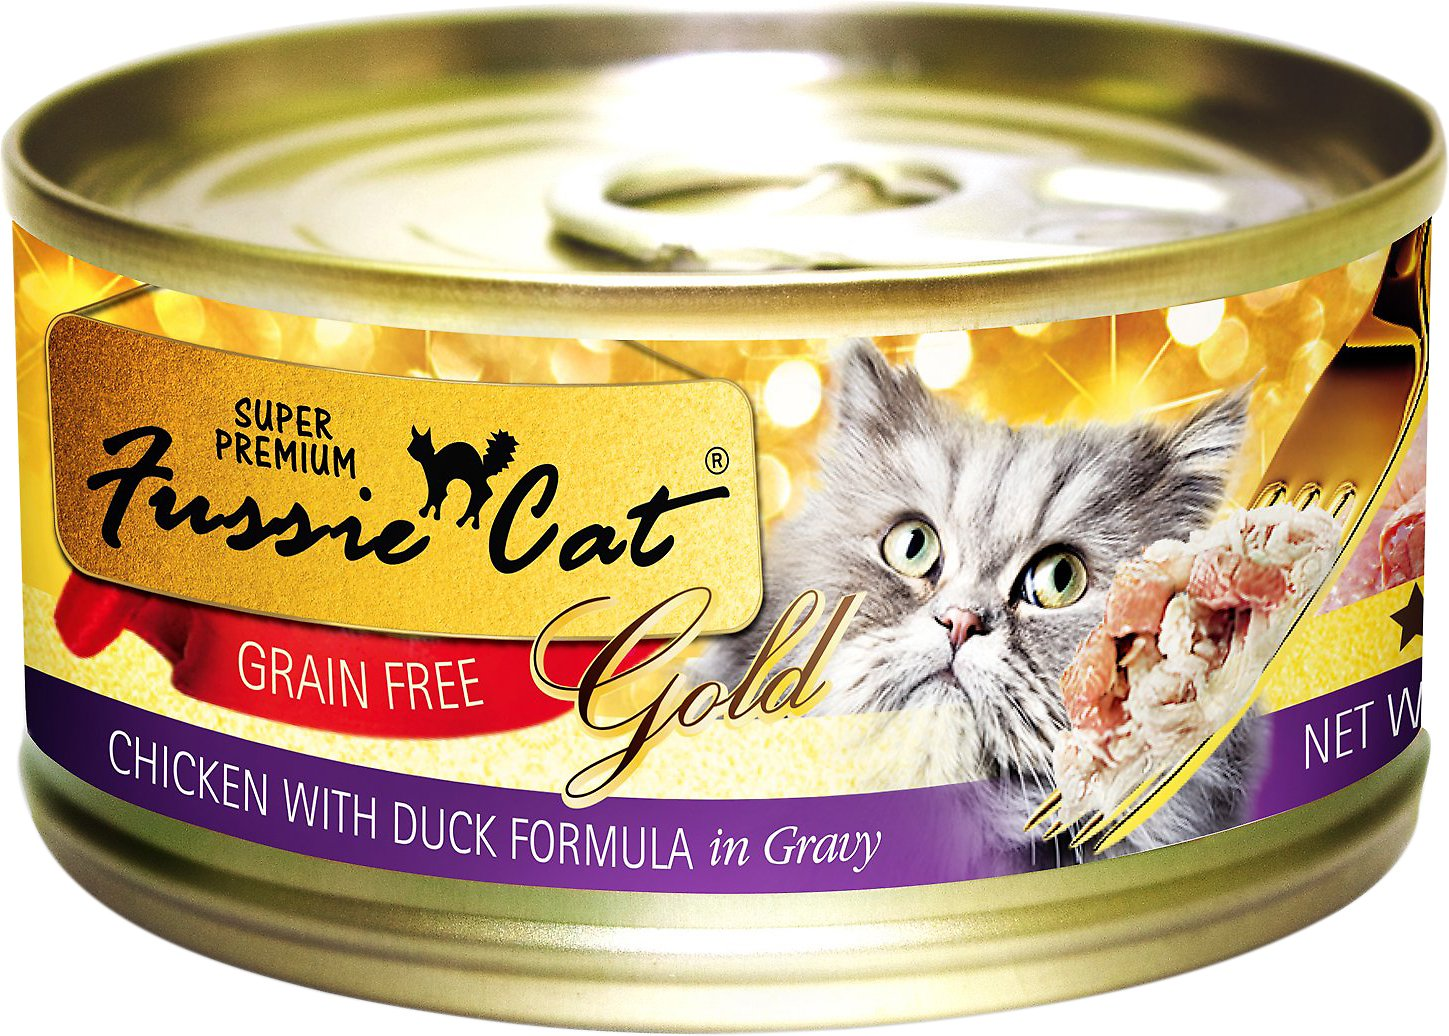 Fussie Cat Super Premium Chicken with Duck Formula in Gravy Grain-Free Canned Cat Food, 2.82-oz